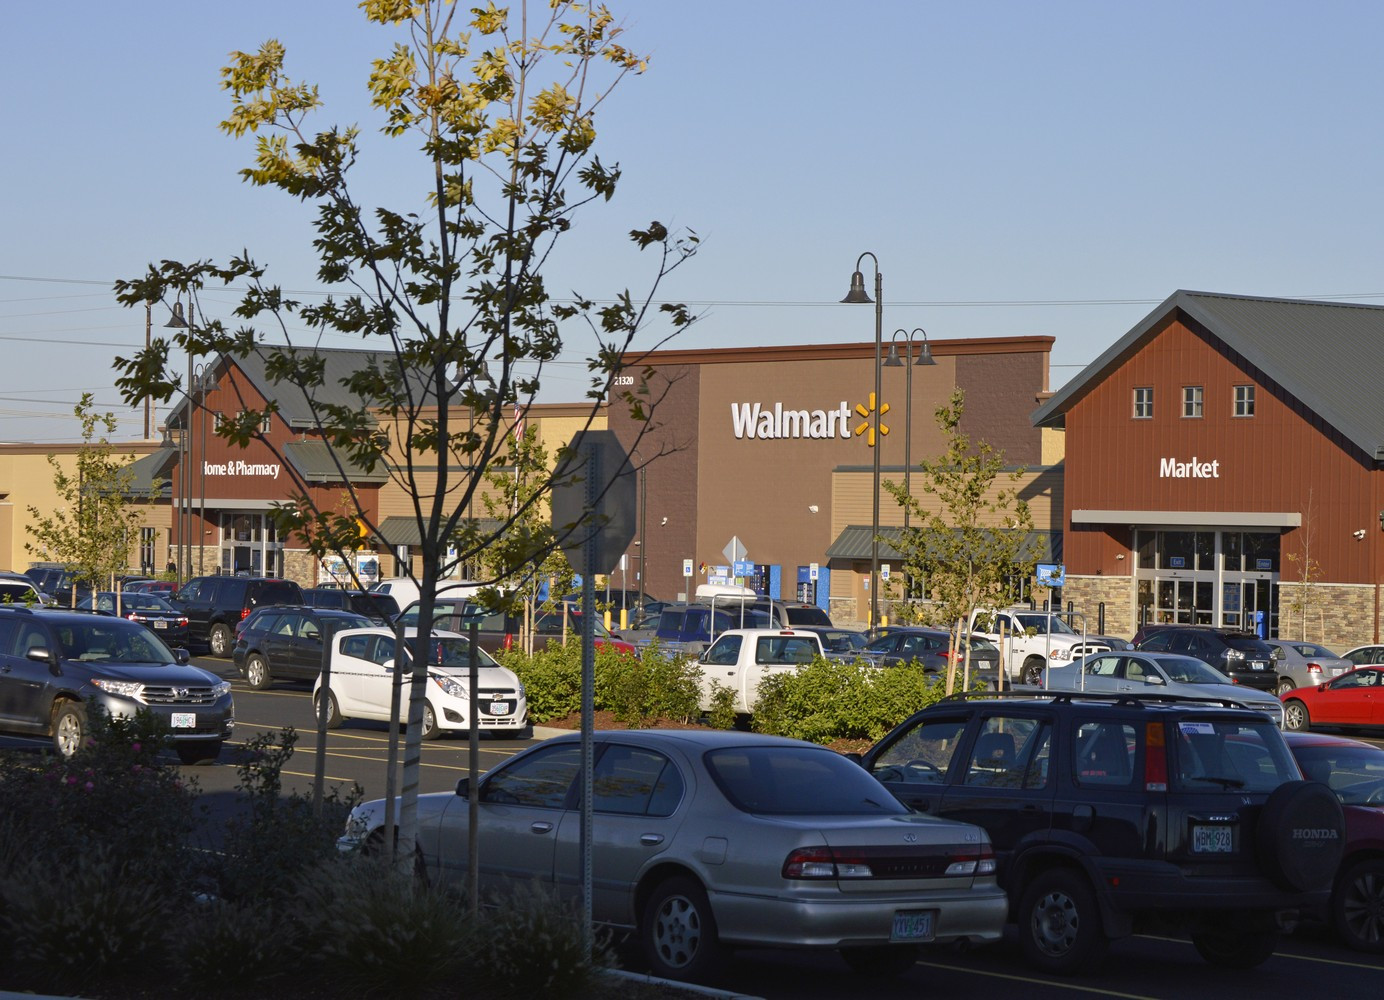 34-sherwood-oregon-walmart-the-kelly-group-real-estate